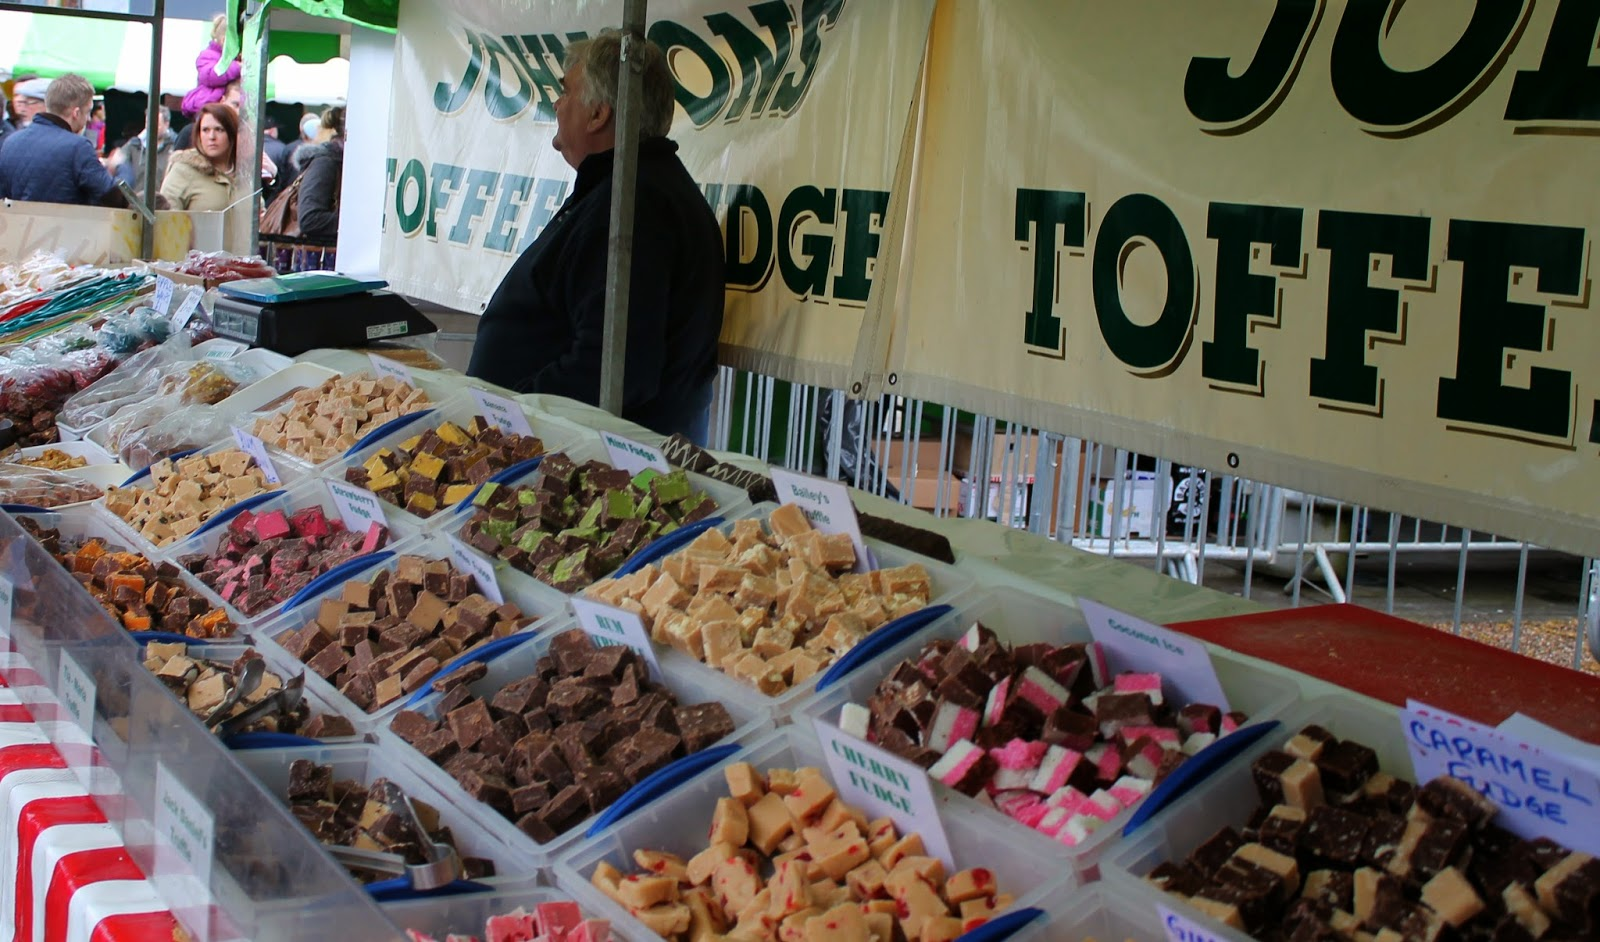 Bishop Auckland Food Festival 2014 - Johnson's Fudge and Toffee